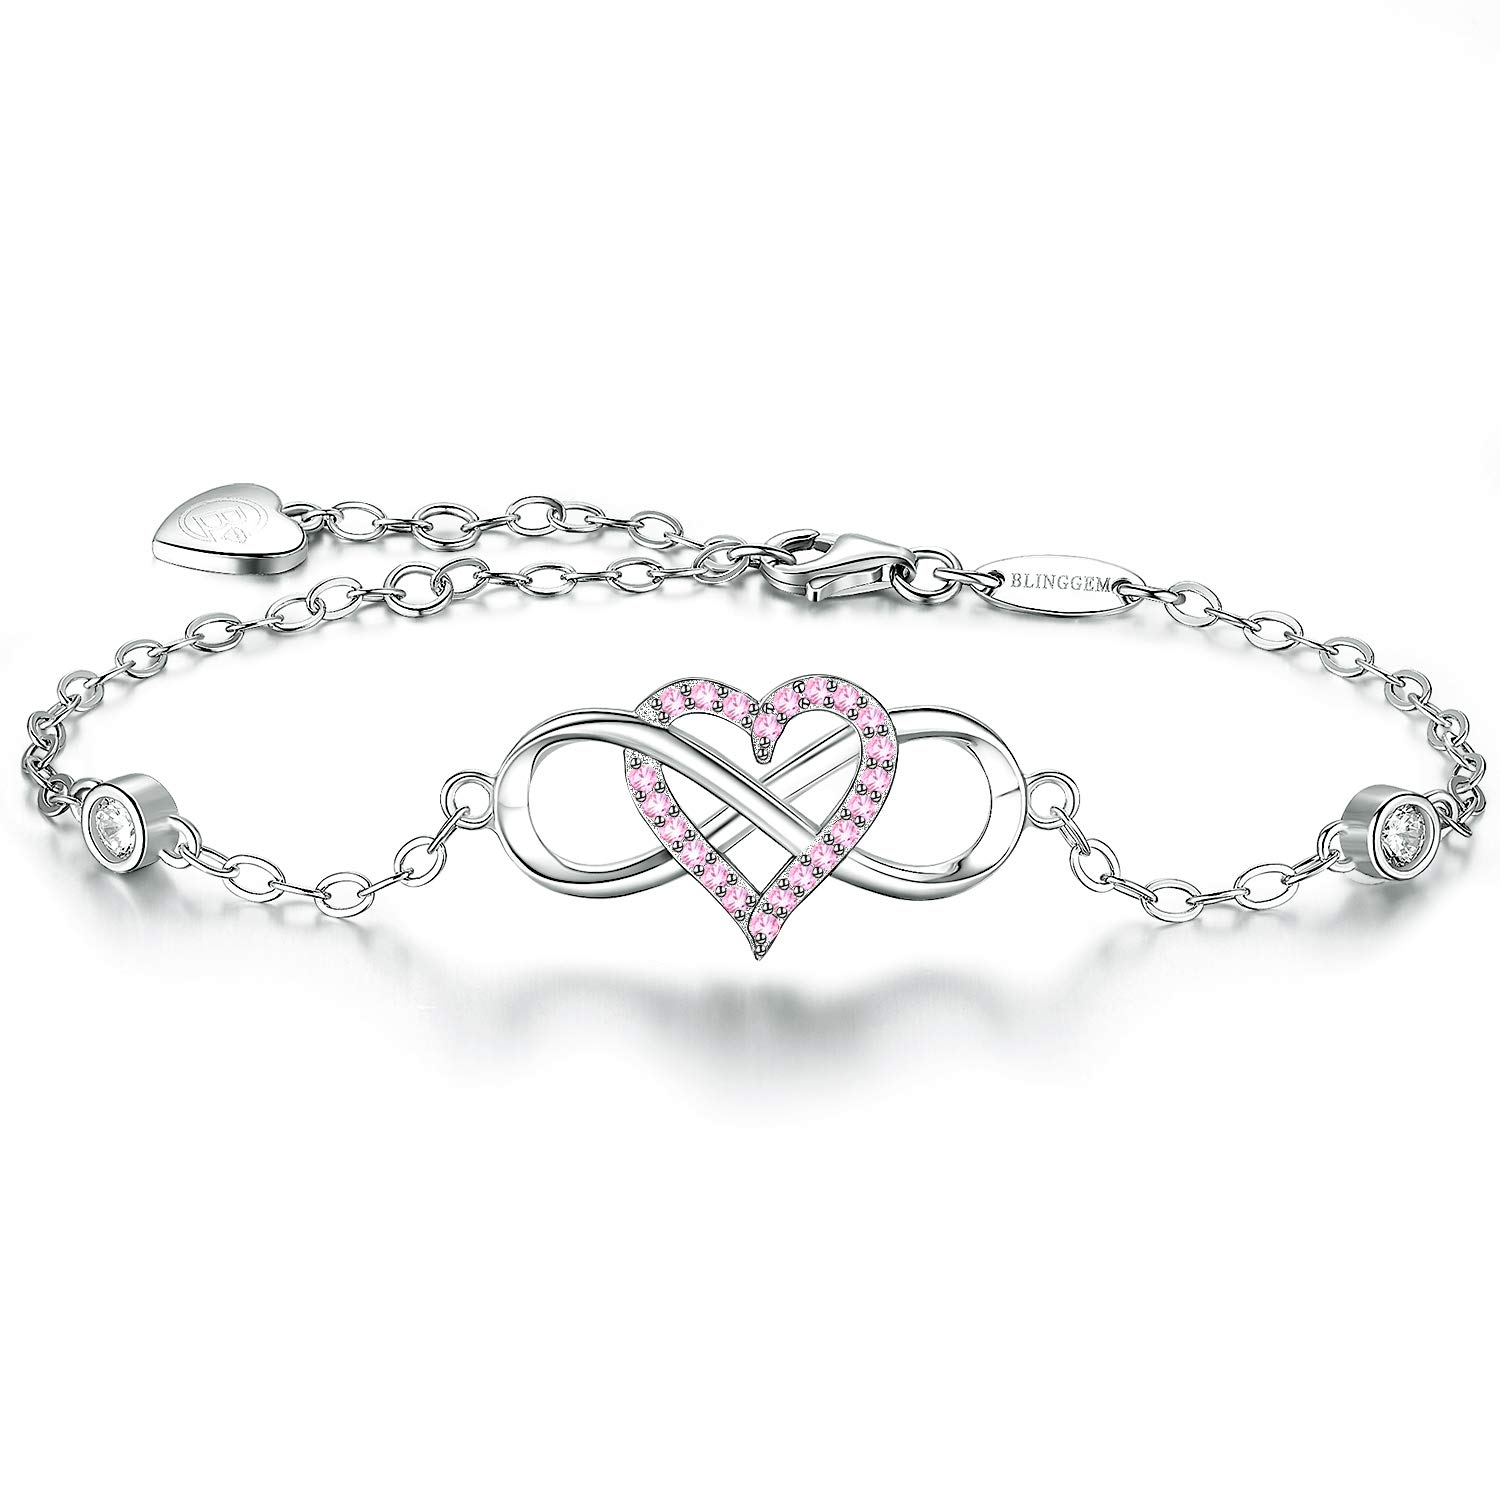 BlingGem Womens Silver Bracelet in 925 Sterling Silver Infinity Heart Charm for Girls with Pink Cubic Zirconia Love Bracelet Fine Jewelry Mothers Day Presents for Mom